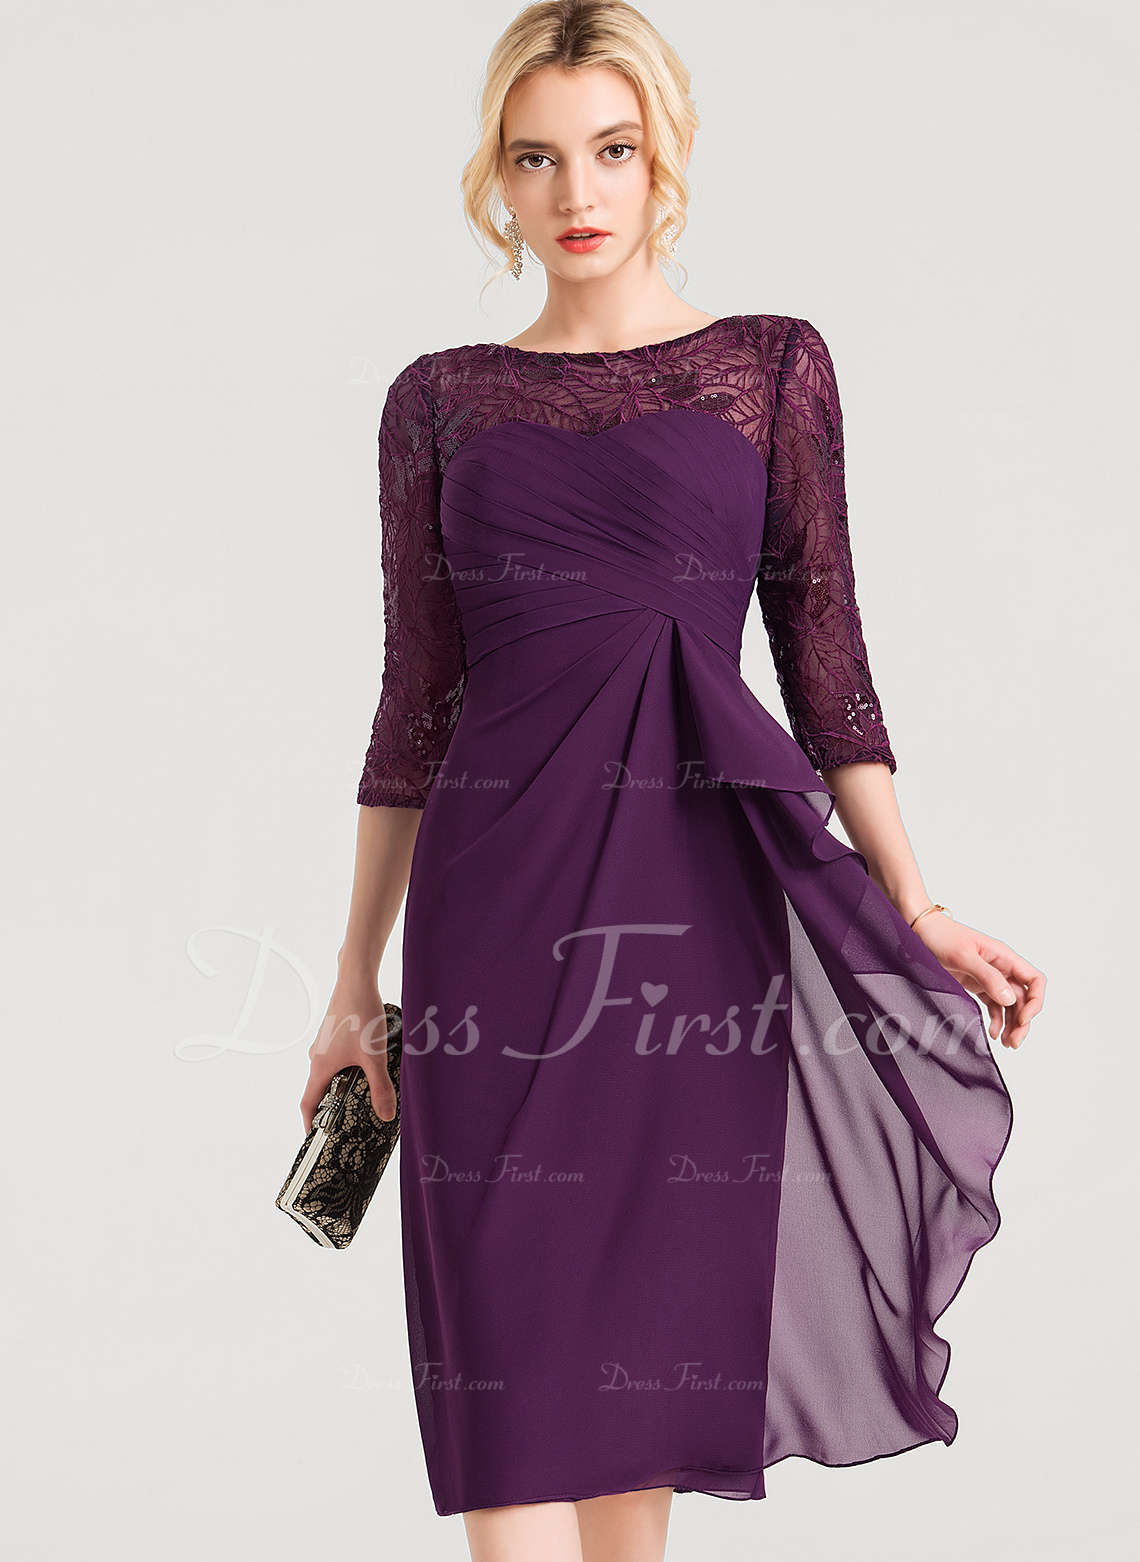 Sheath/Column Scoop Neck Knee-Length Chiffon Cocktail Dress With Lace Sequins Cascading Ruffles